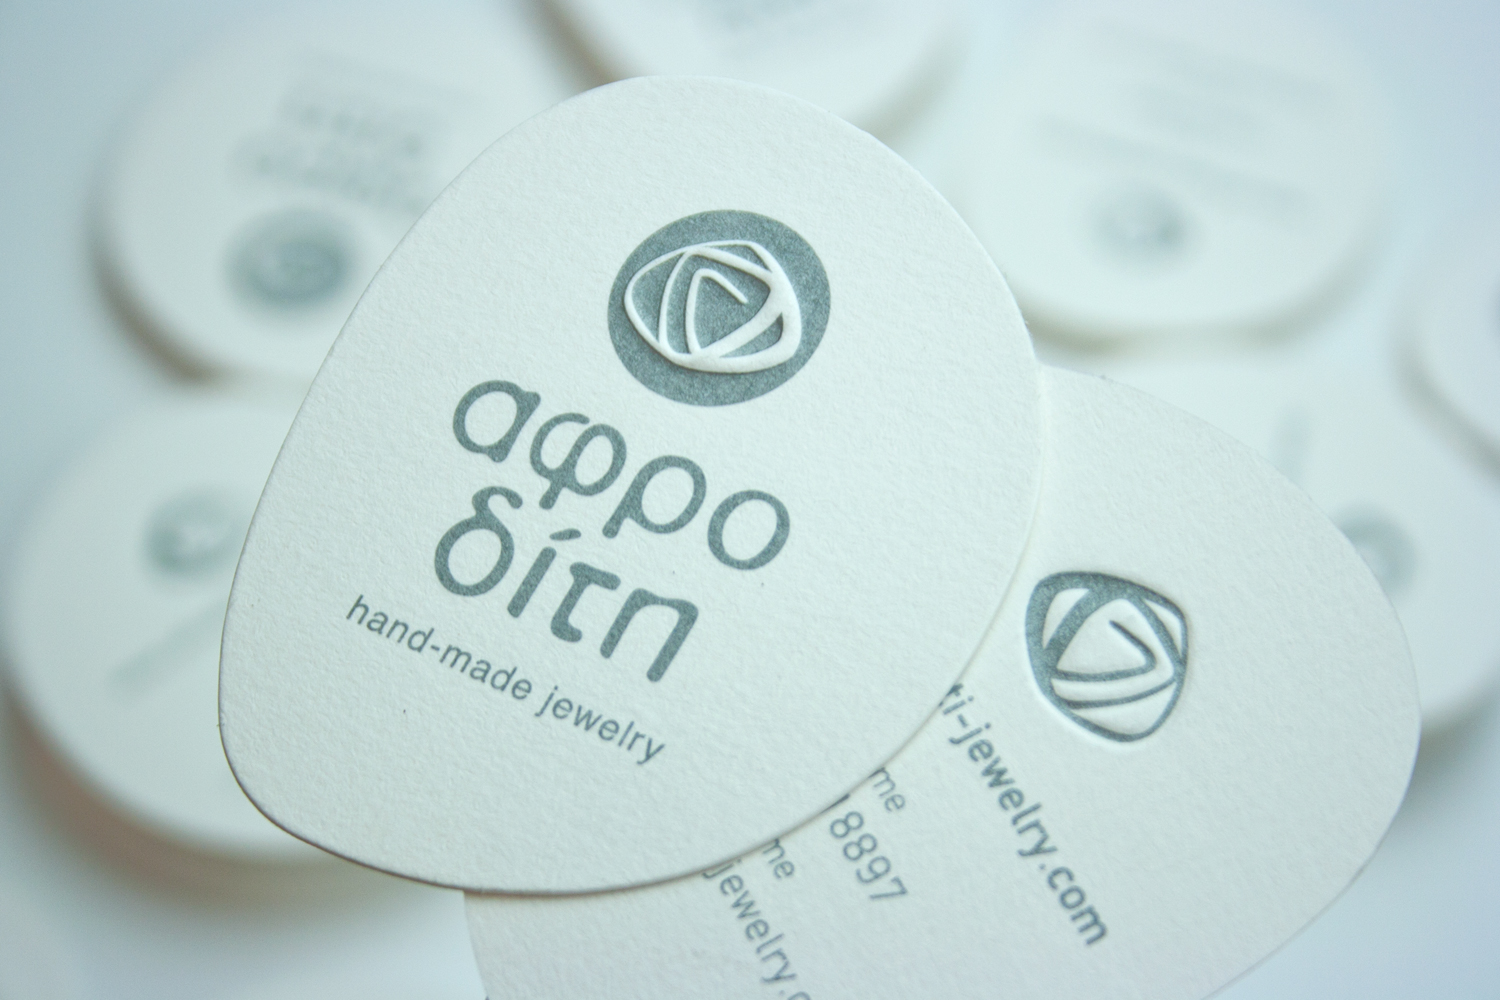 Aphrodite hand-made jewelry logo & business card on Behance